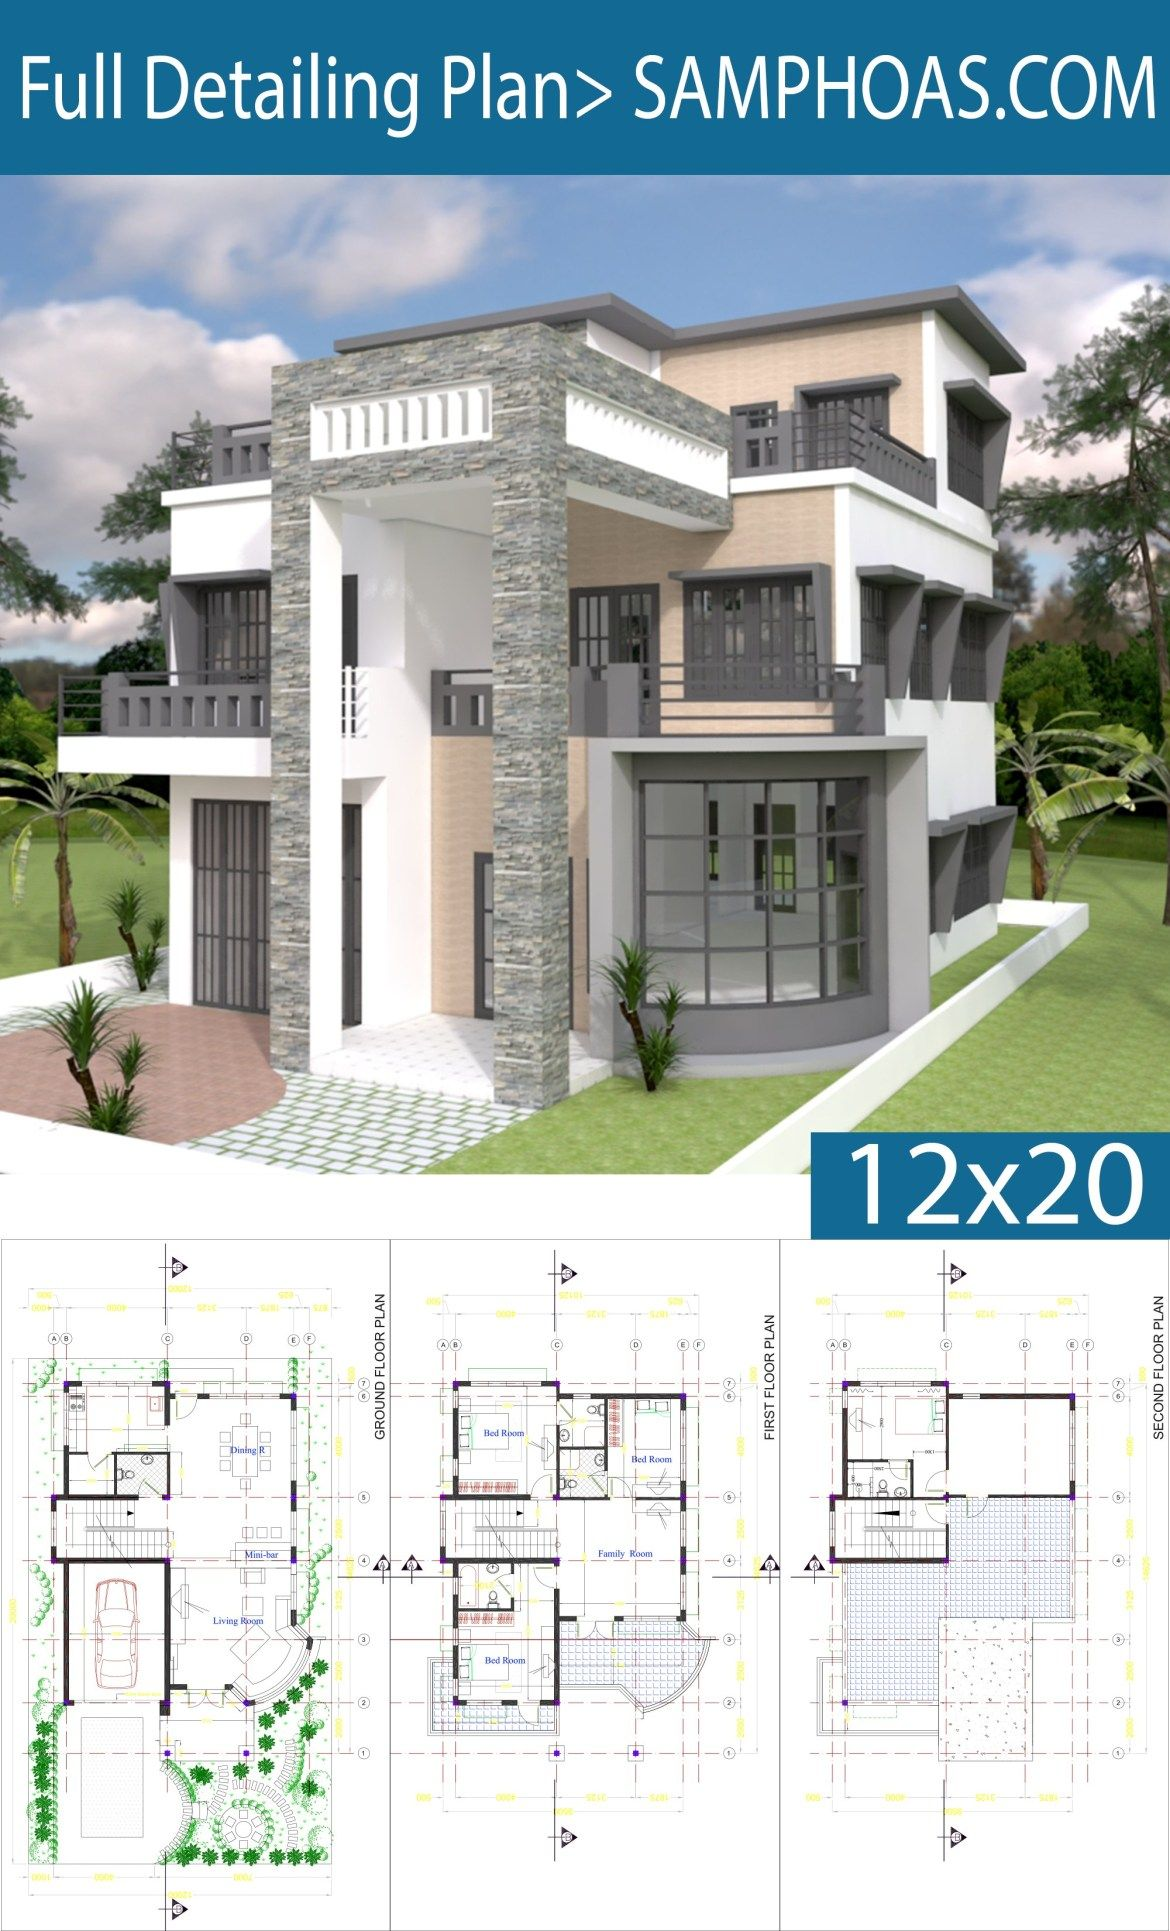 Modern House Plan 9x14 5m With 4 Bedrooms Samphoas Plansearch Modern House Floor Plans Modern House Plans Modern House Plan